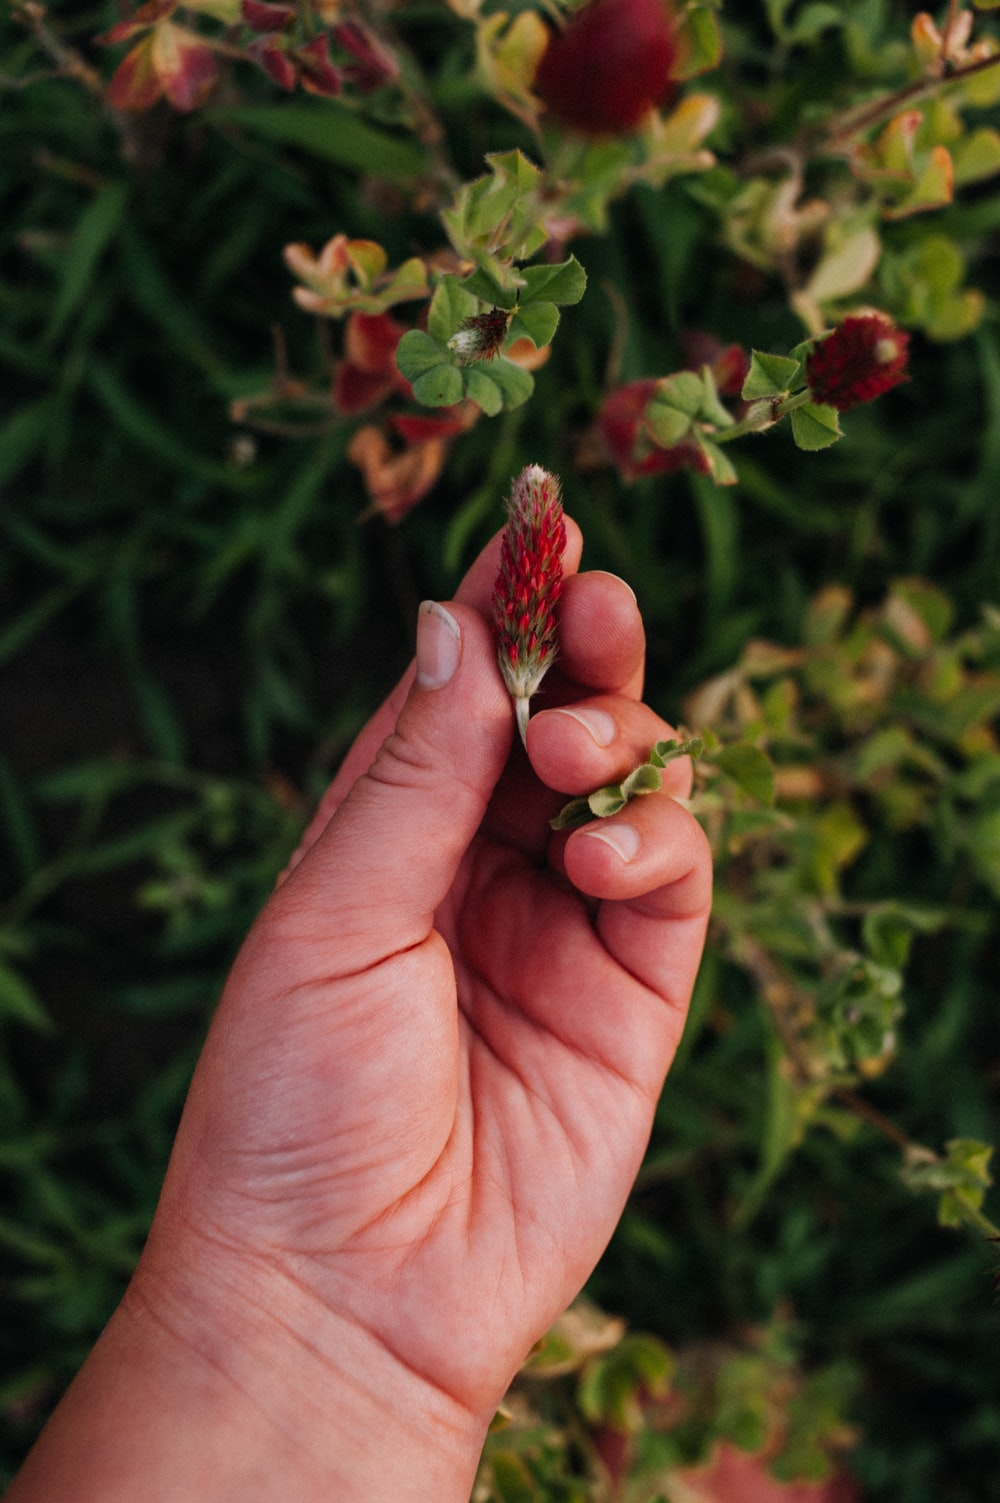 red and white flower on persons hand